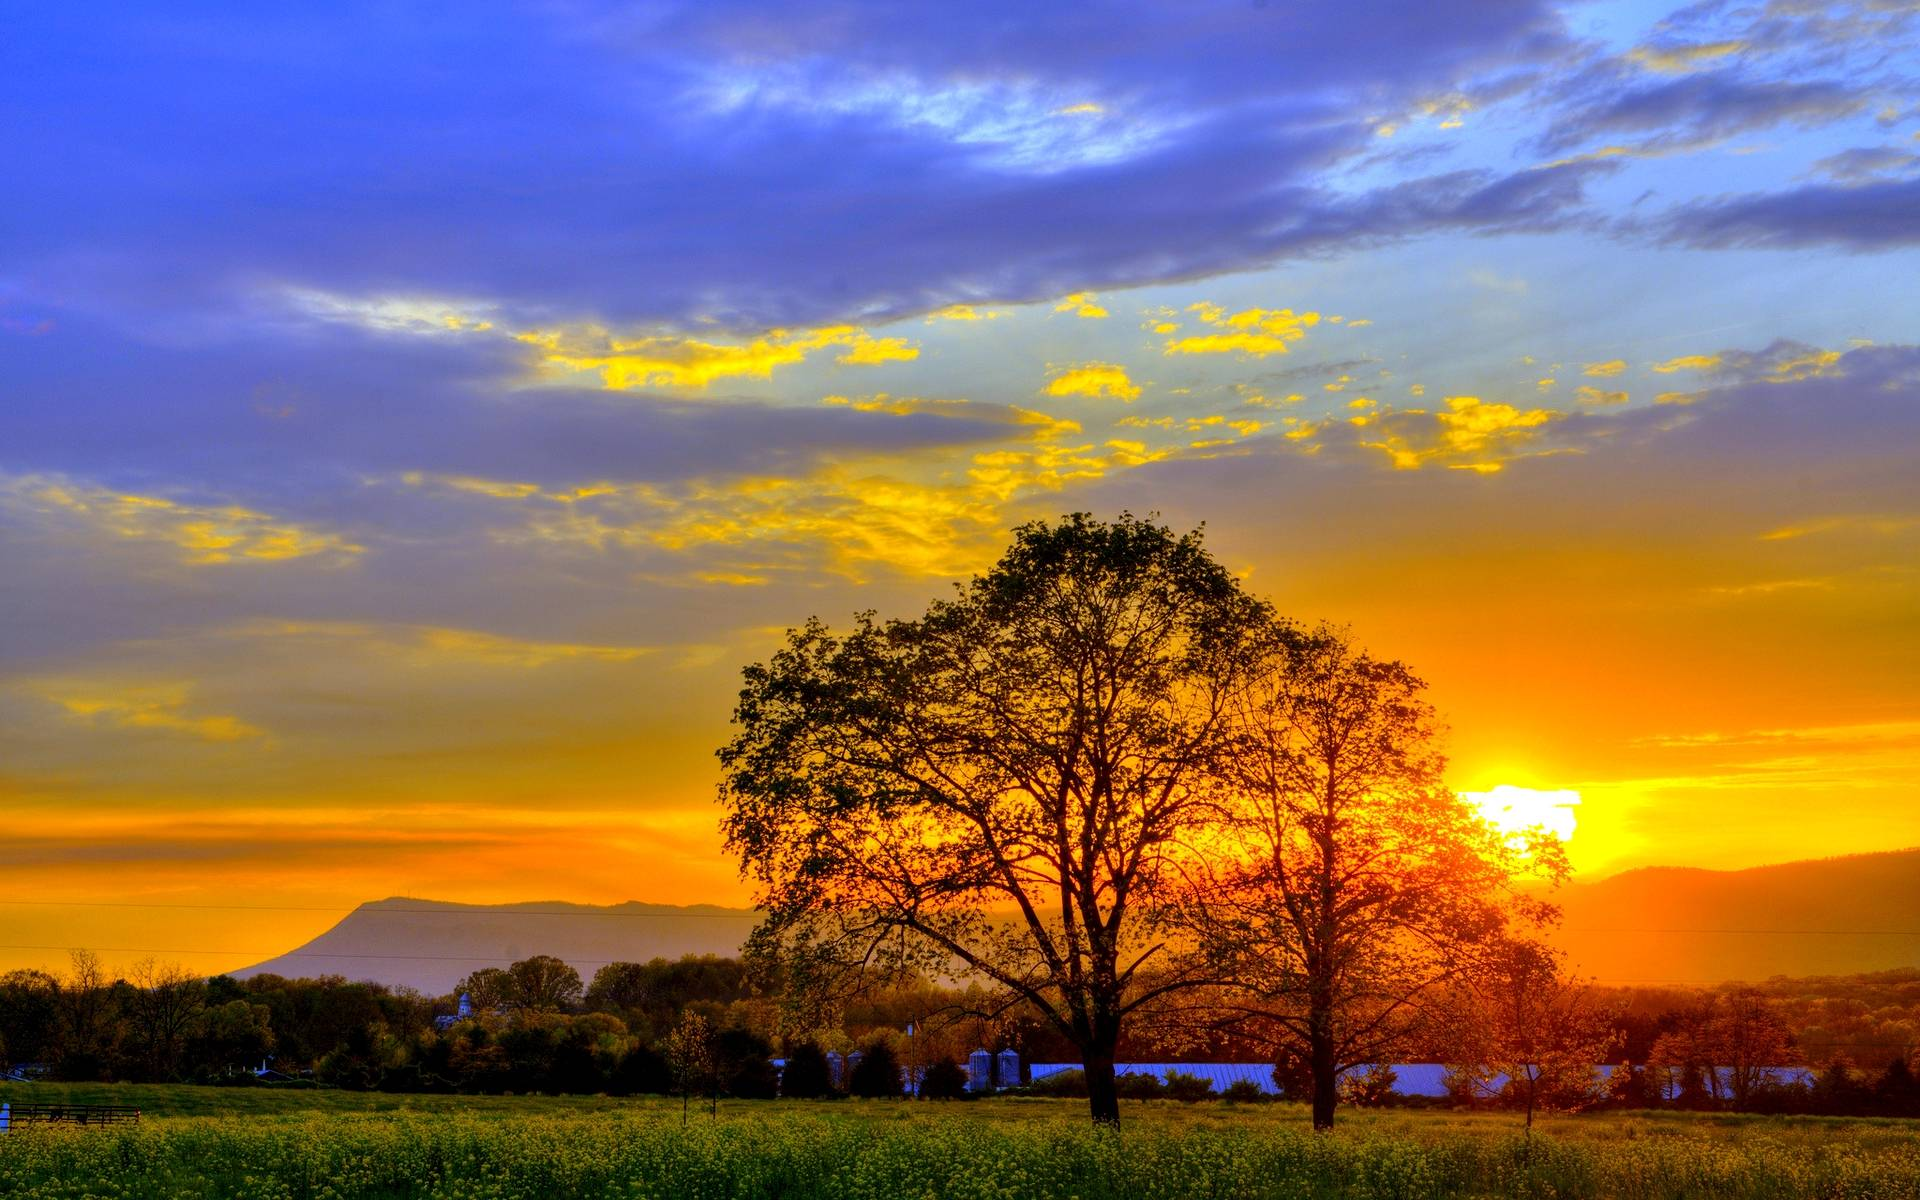 summer sunset landscape wallpaper - photo #6